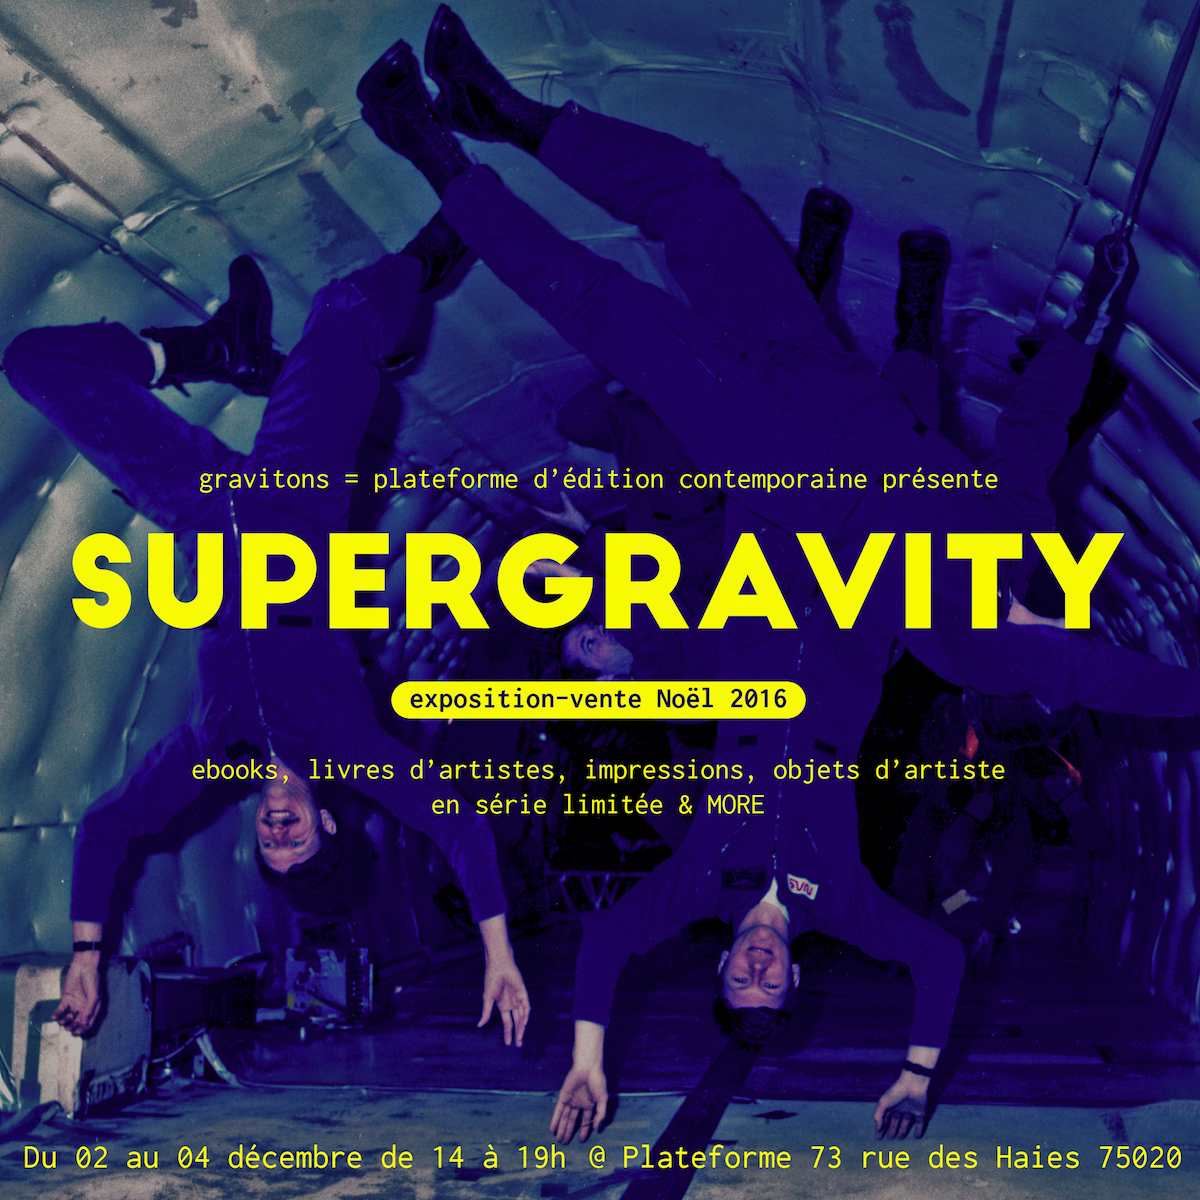 SUPERGRAVITY – exposition-vente Noël 2016